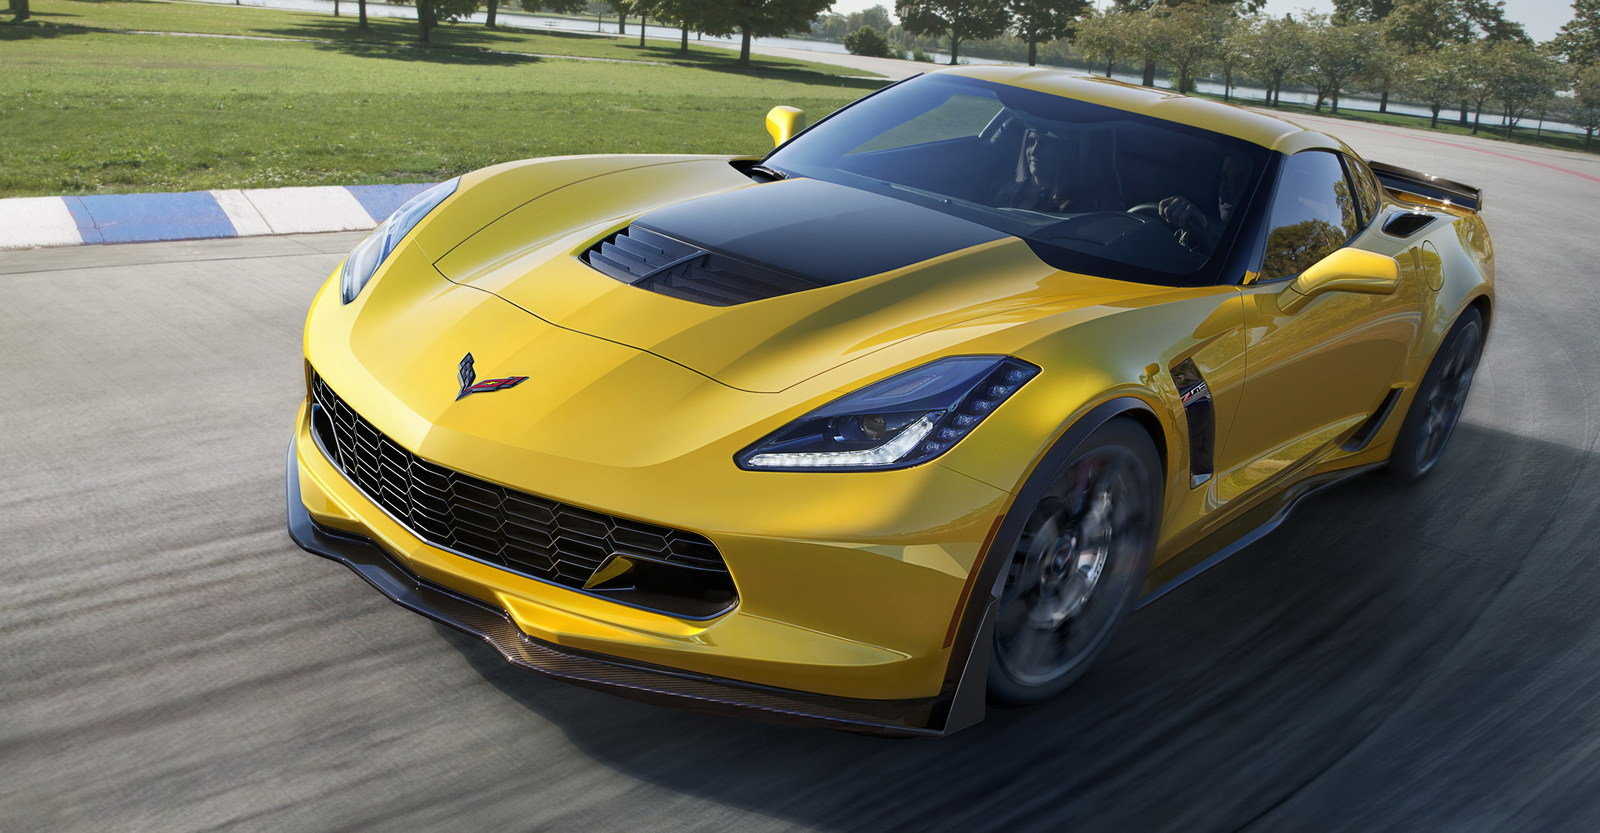 Corvette z06 owners file class action lawsuit against gm over performance issues